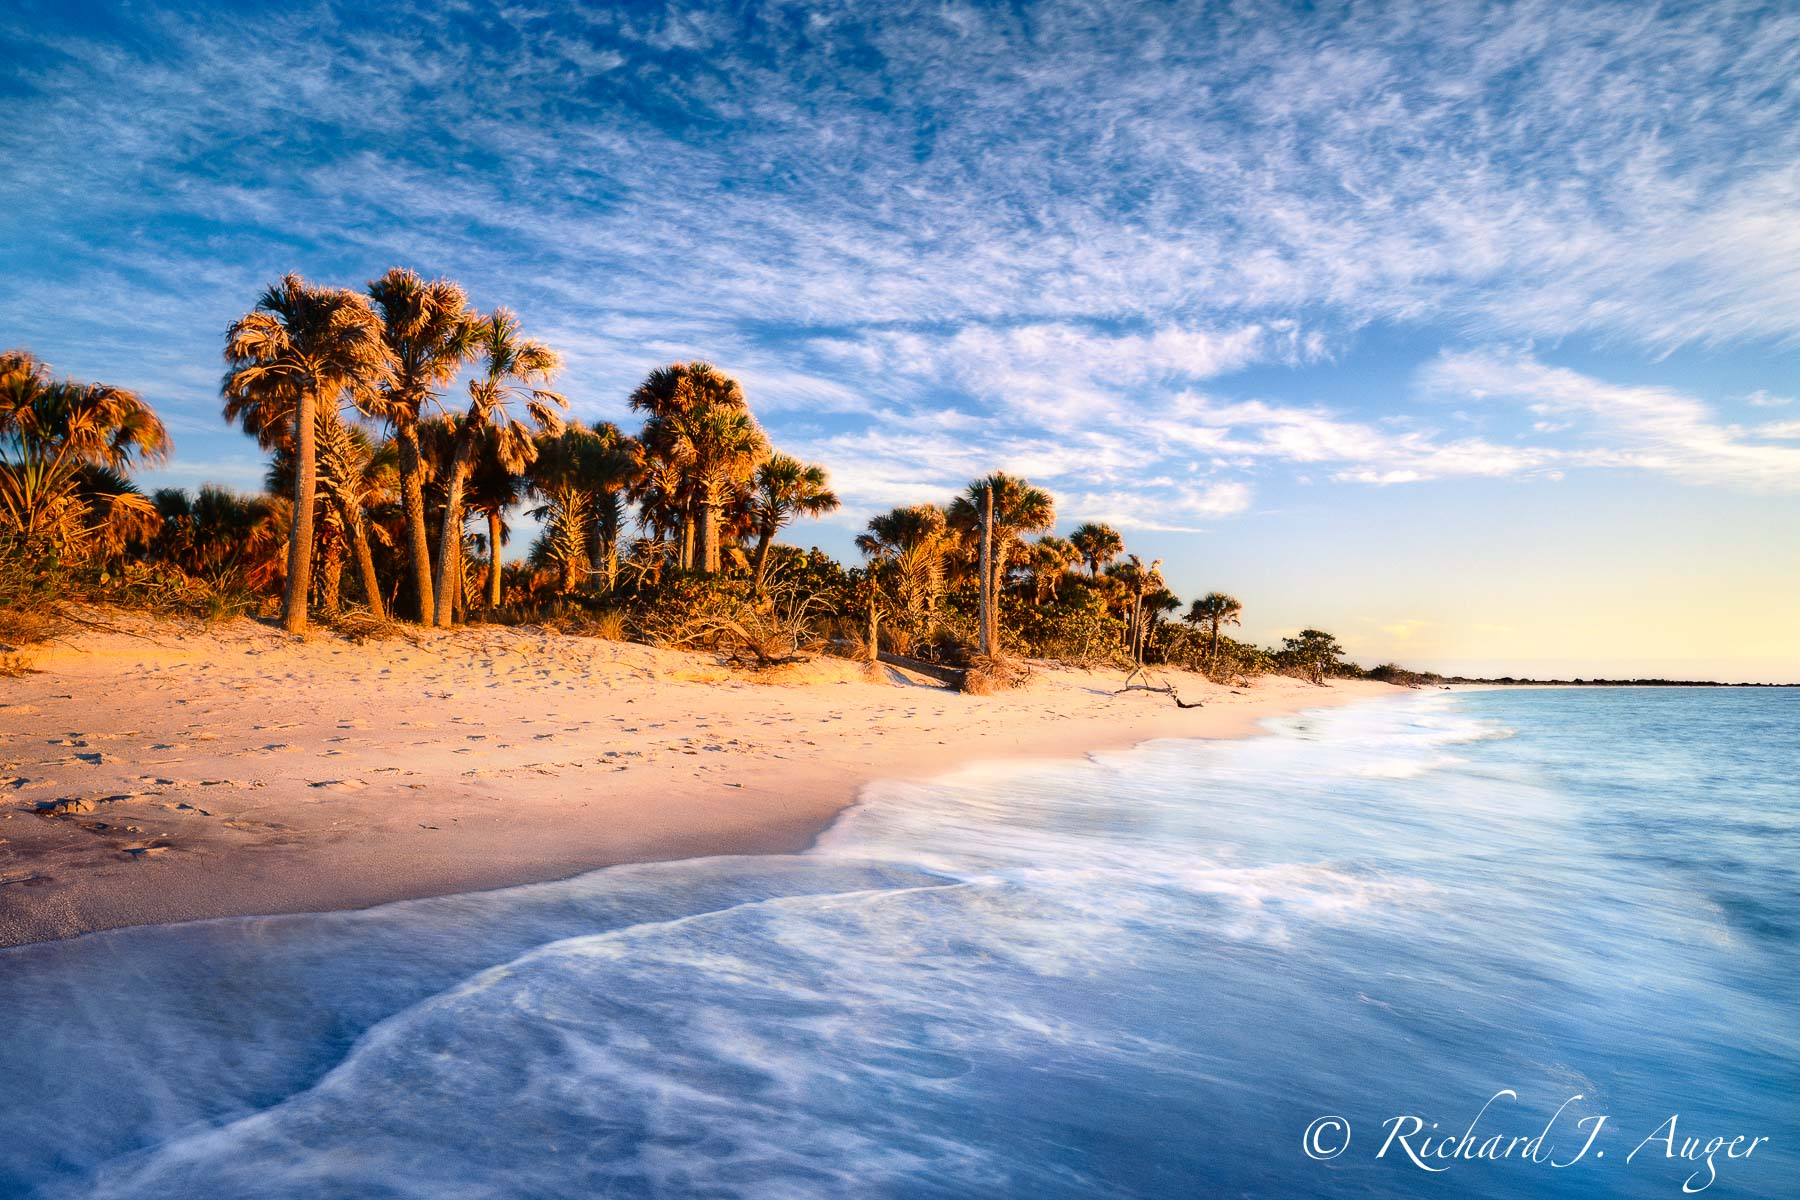 Cayo Coast State Park, Beach, Florida, Nature, Sunset, Ocean, Palm Trees